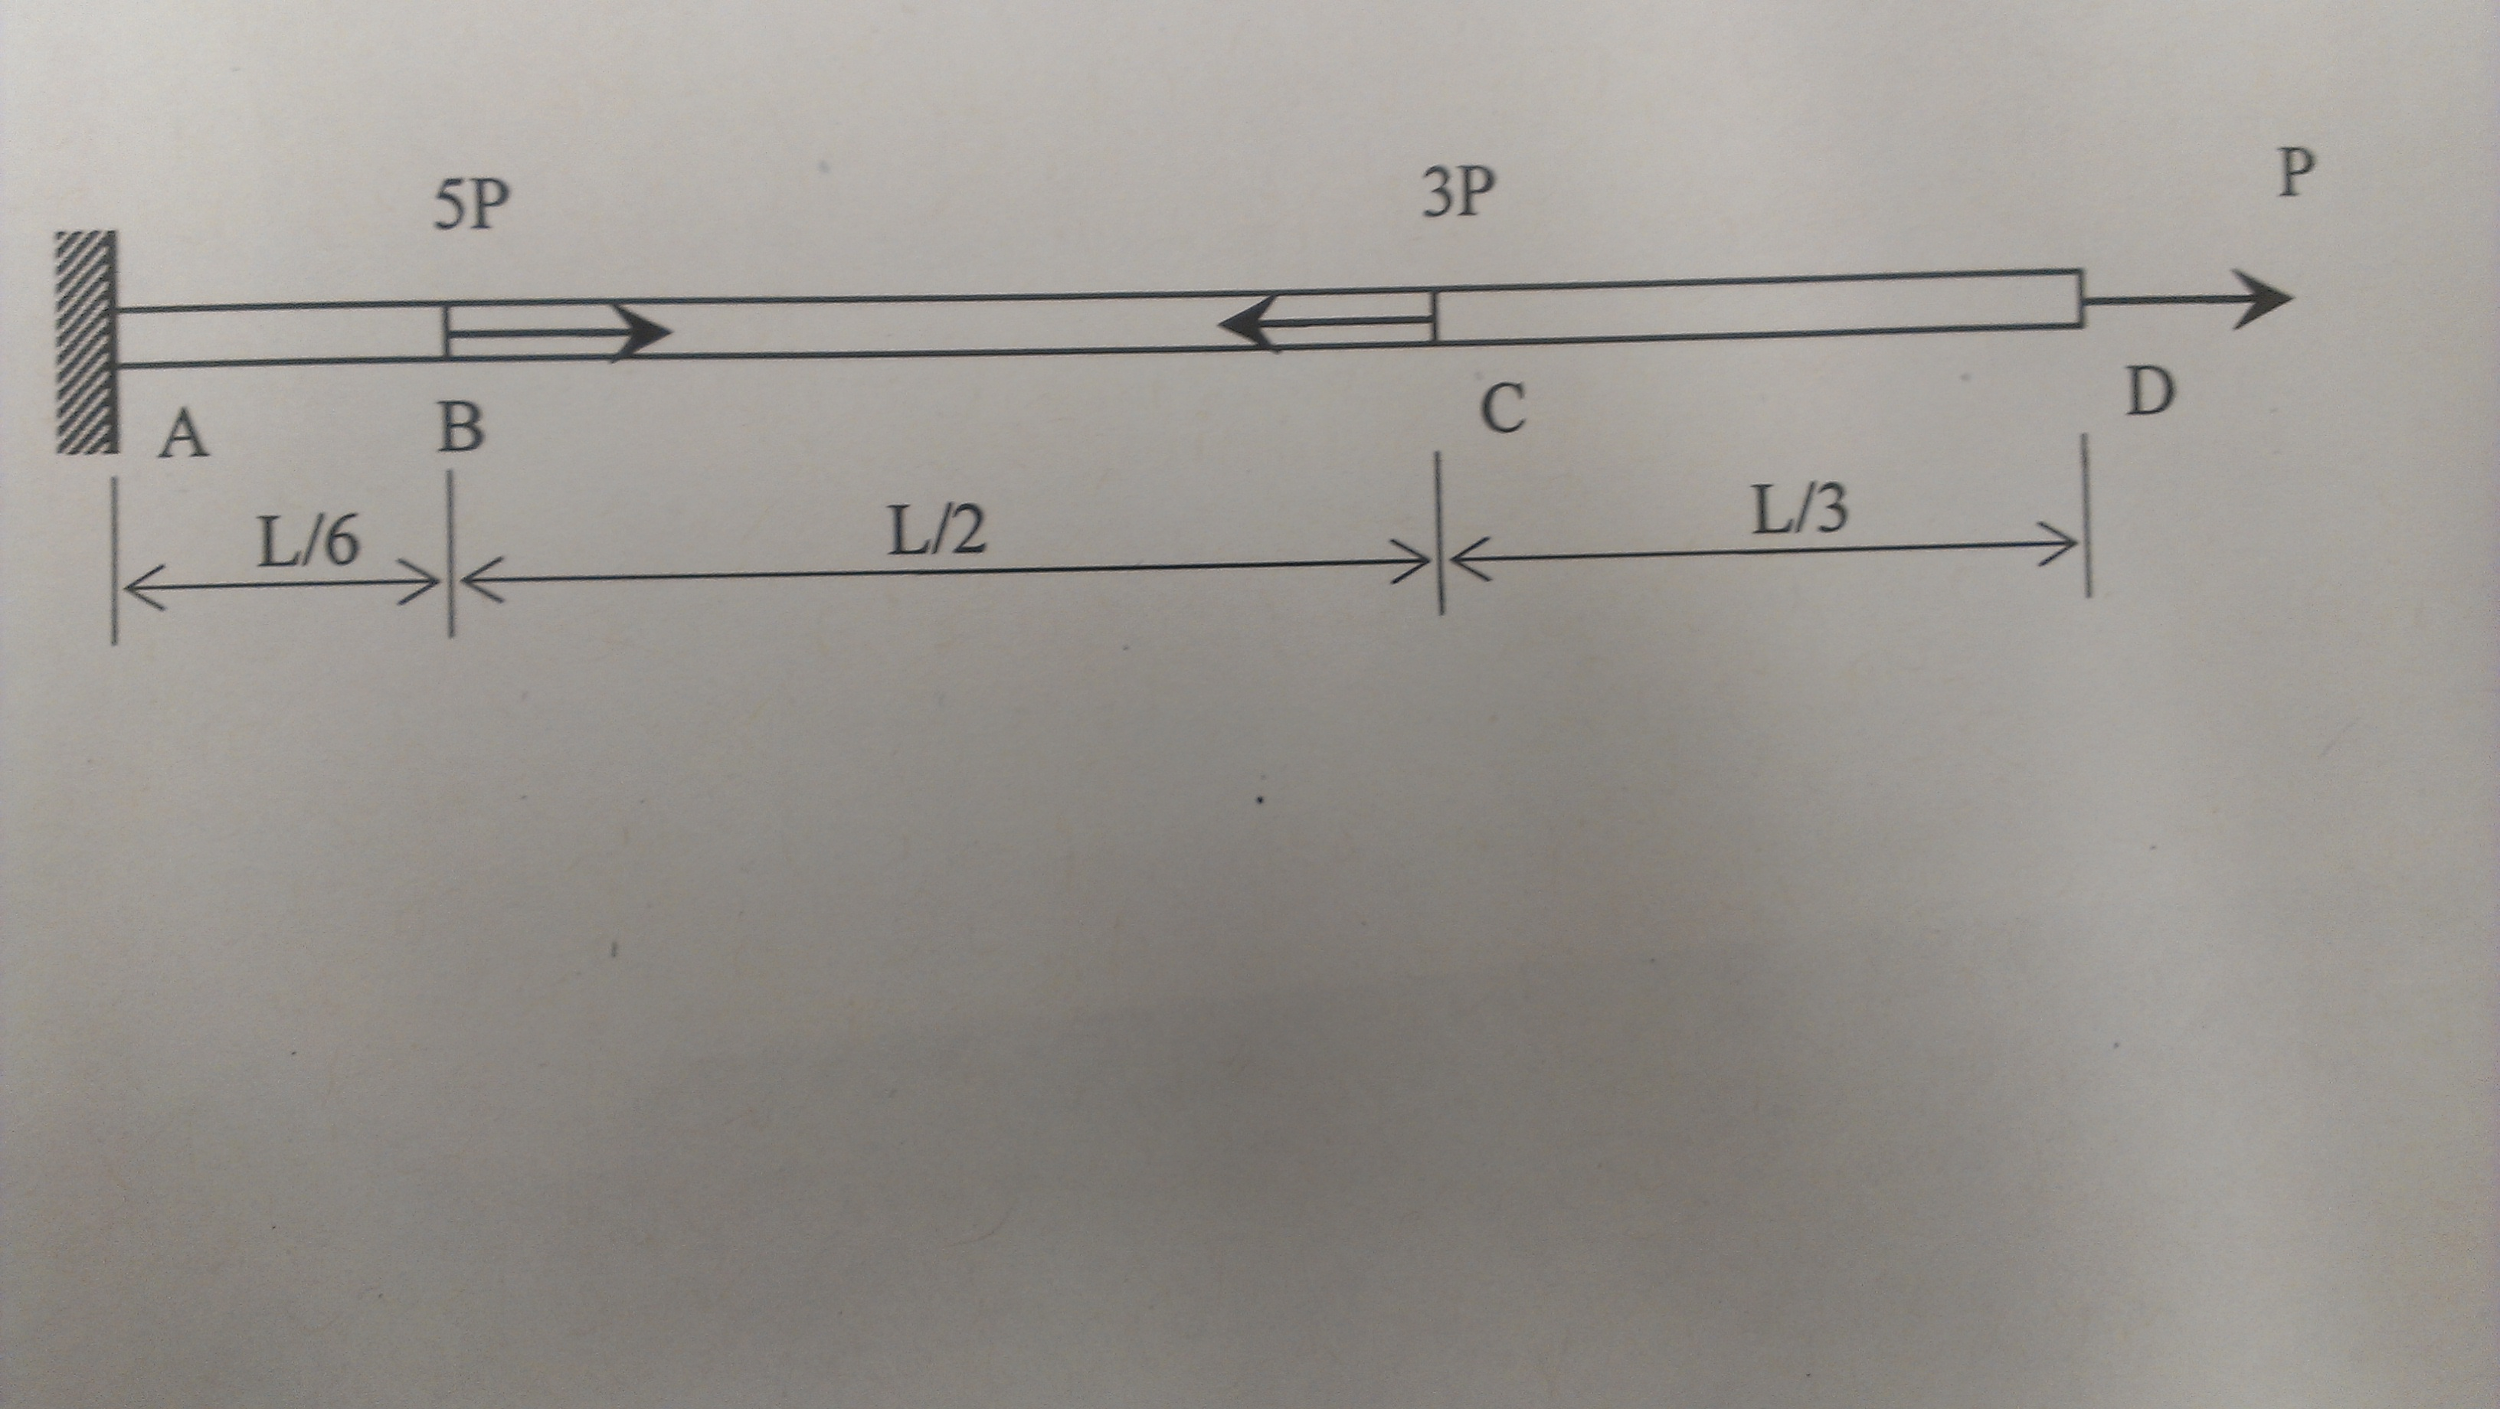 A prismatic bar ABCD of length L, cross-sectional